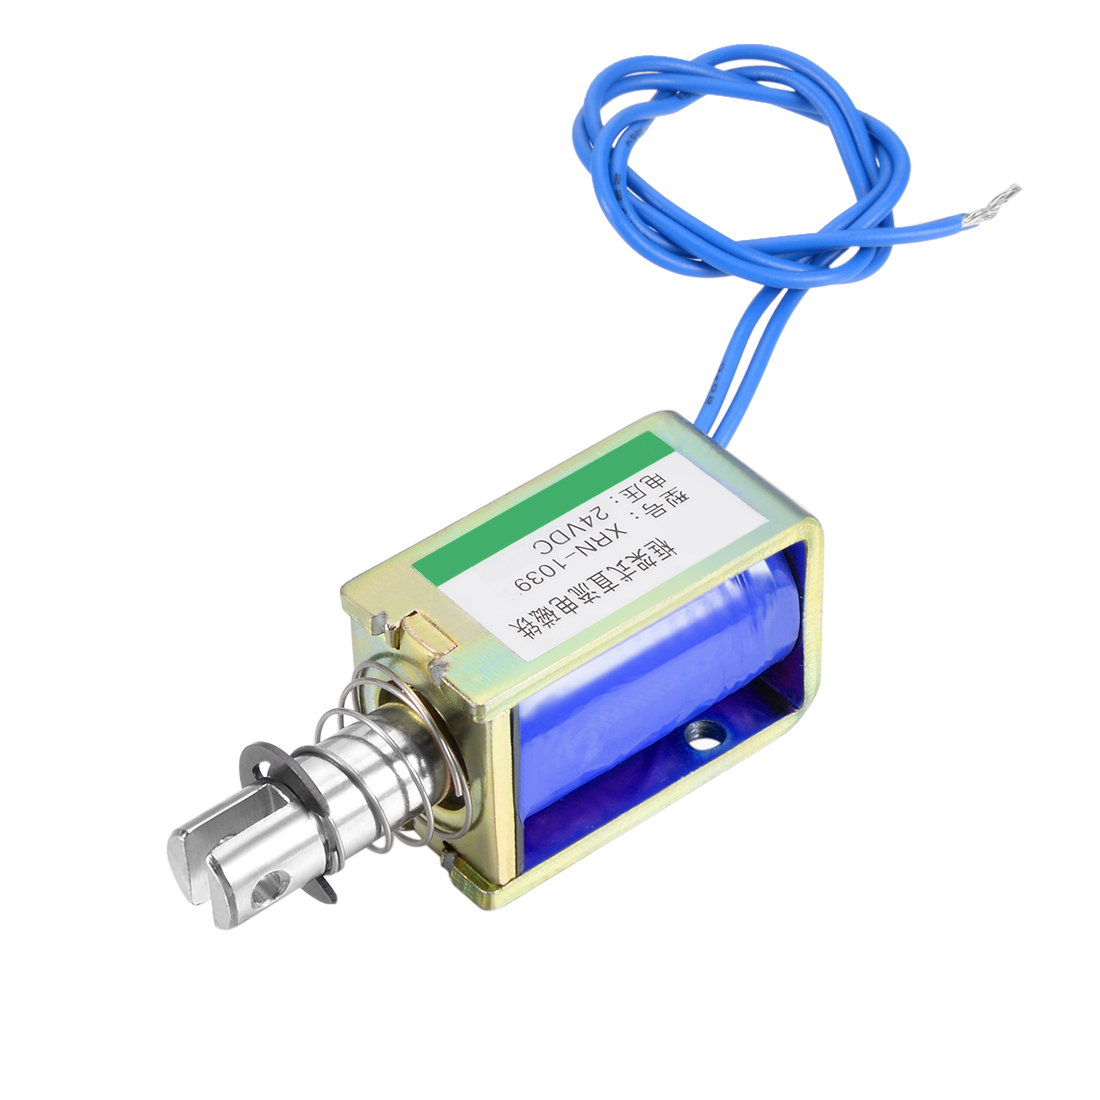 Uxcell XRN-1039 DC 24V 0.8A 19.2W 25N 10mm Pull Type Open Frame Solenoid Electromagnet